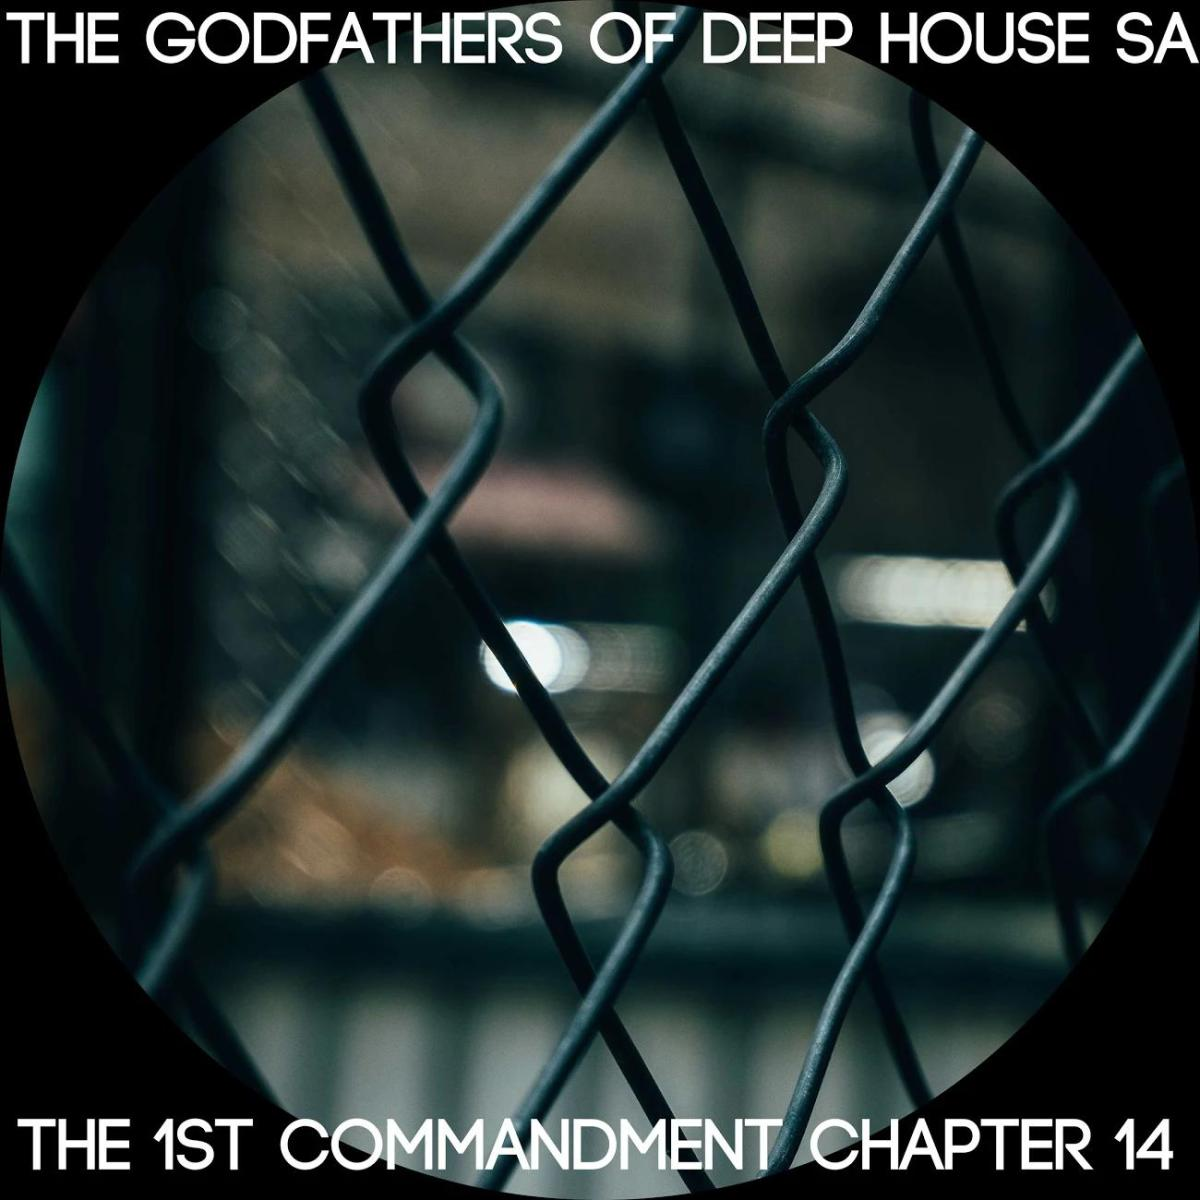 The Godfathers Of Deep House SA - The 1st Commandment Chapter 14